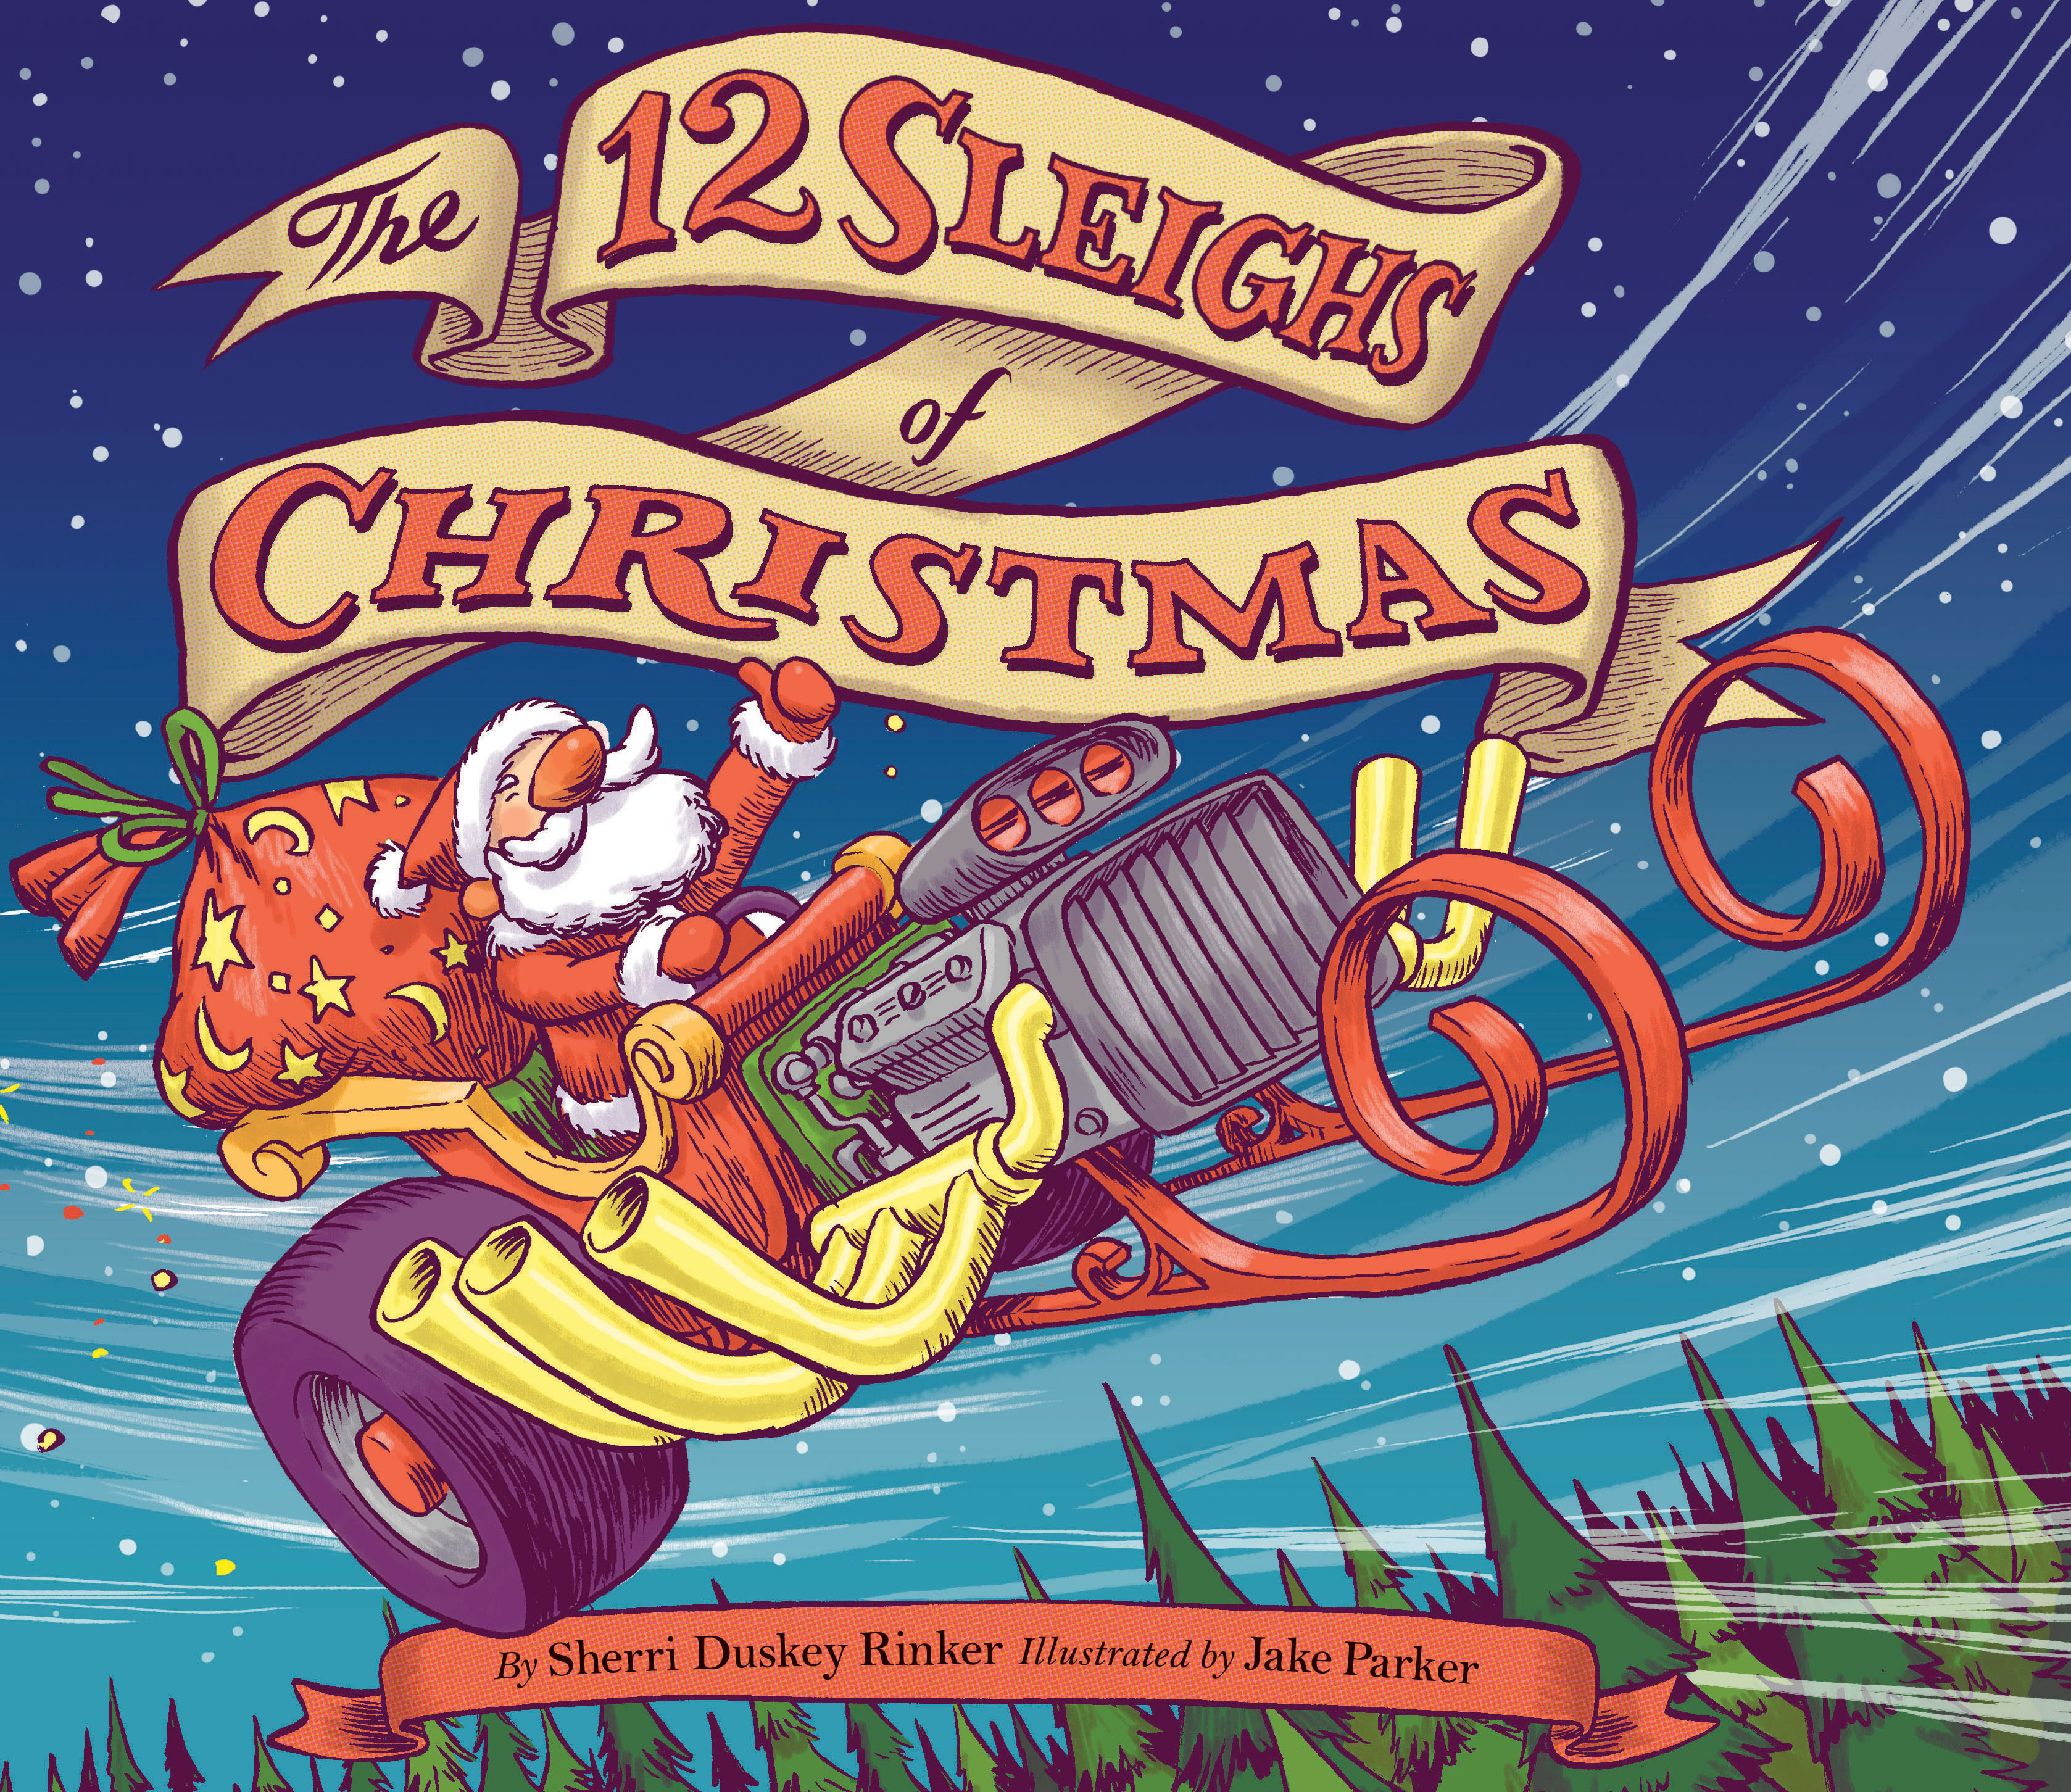 12 Sleighs of Christmas